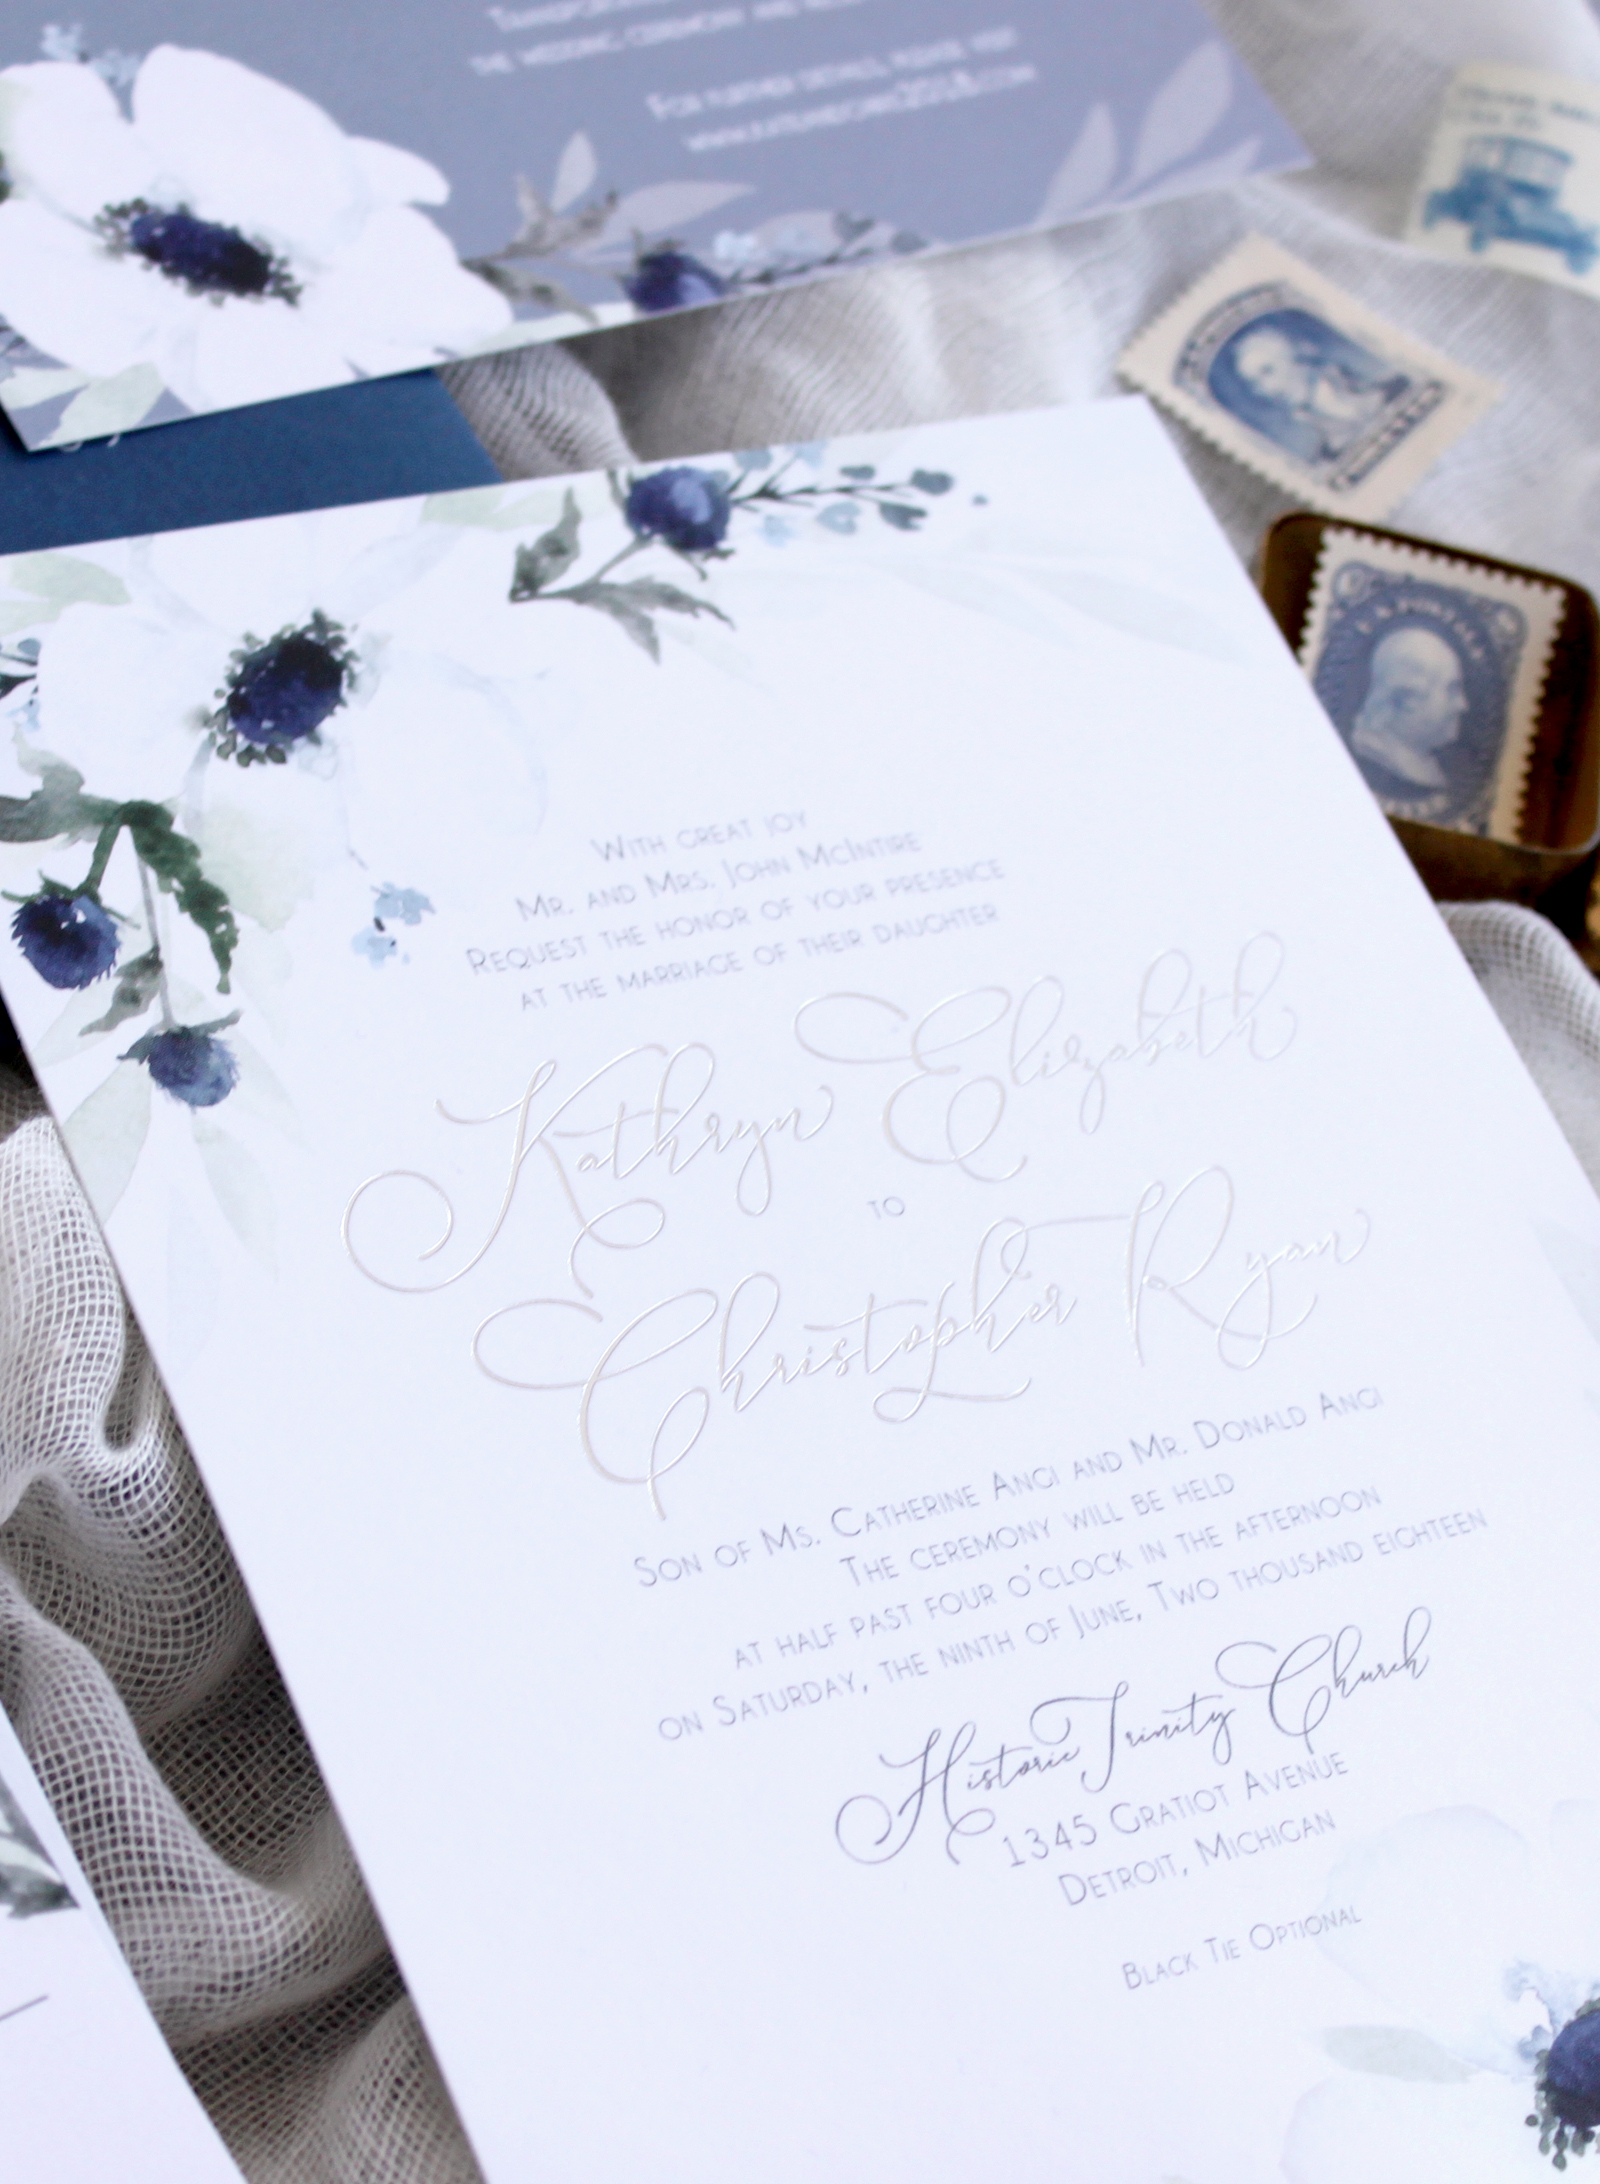 Wedding Invitation Printing Methods - Silver foil wedding invitation calligraphy design by Blushed Design: Fine Art Wedding Invitations and Portraits. #weddinginvitations #fineartweddings #fineartweddinginspiration #weddinginspiration #silverfoilinvitations